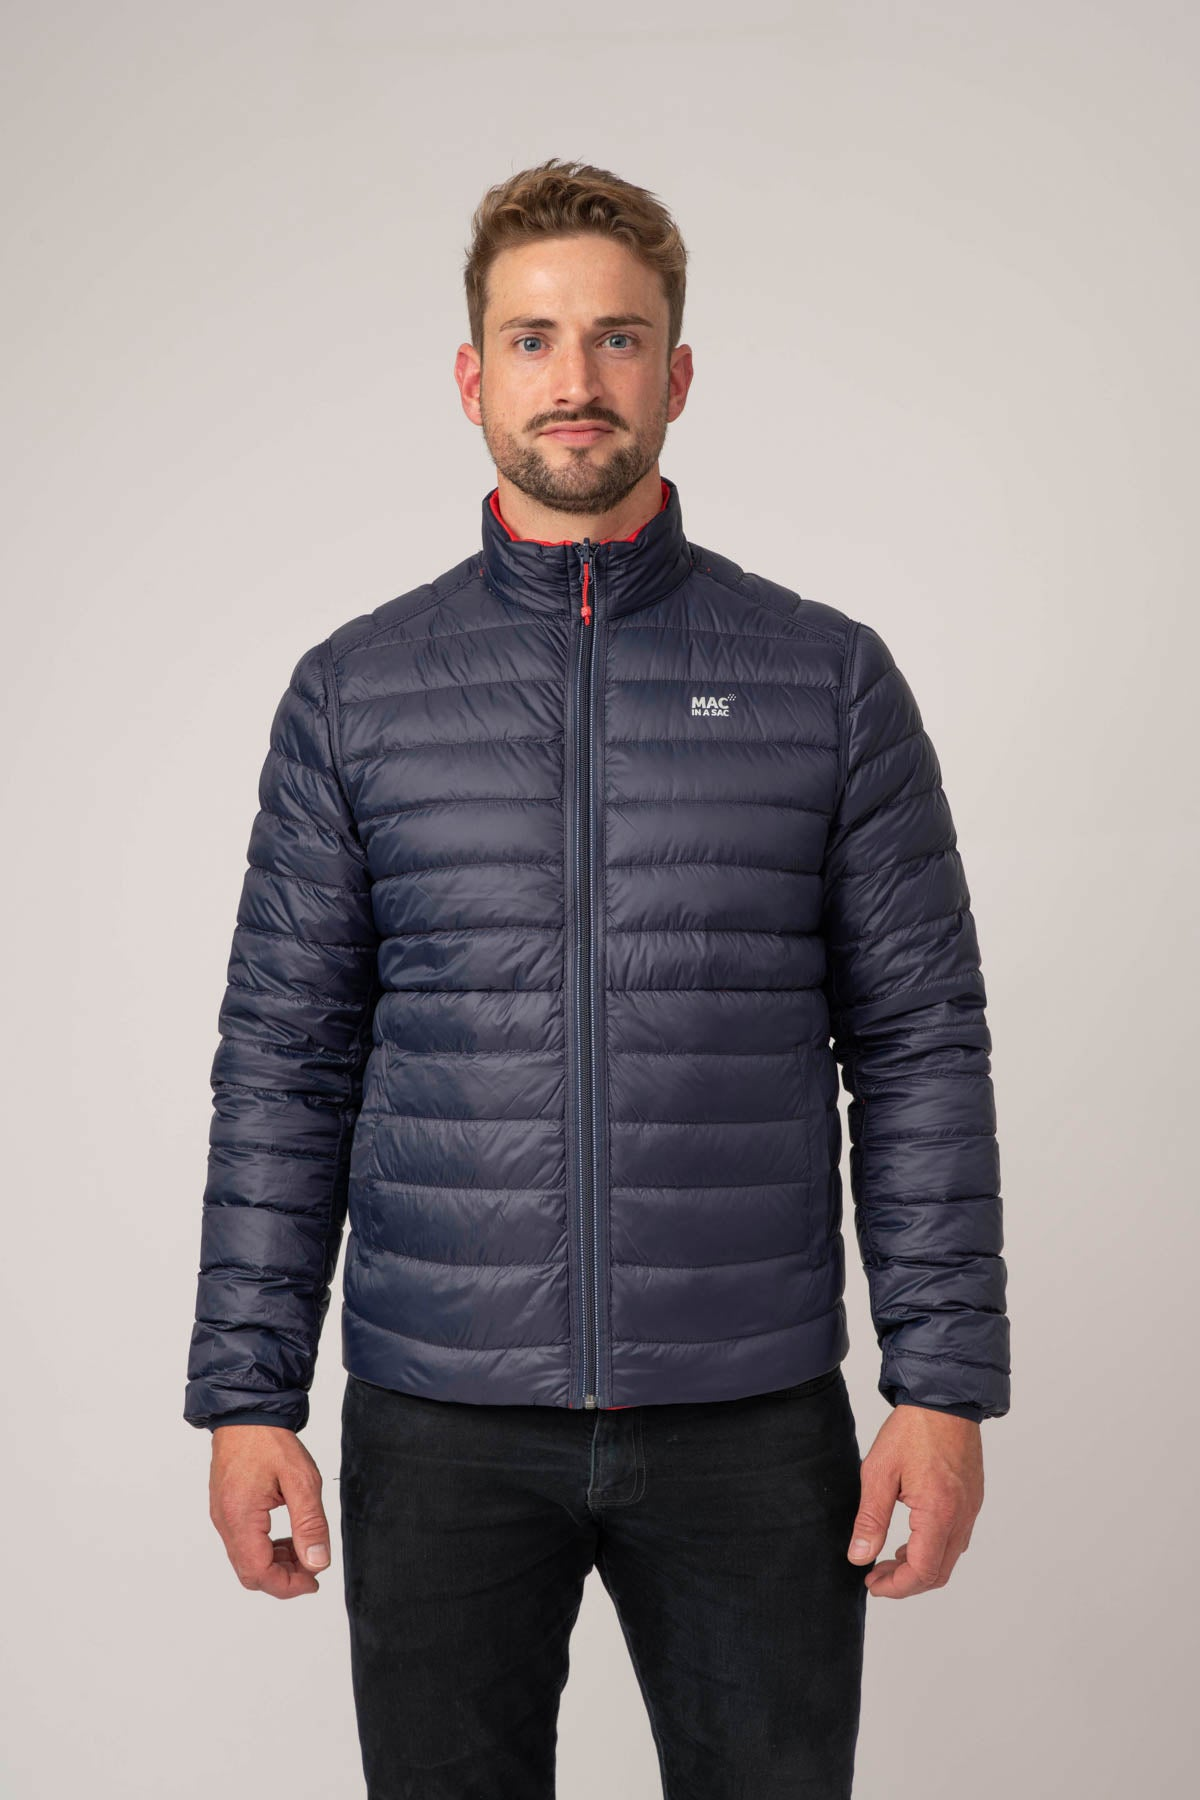 Polar - Mens Packable Down Jacket - Navy Red